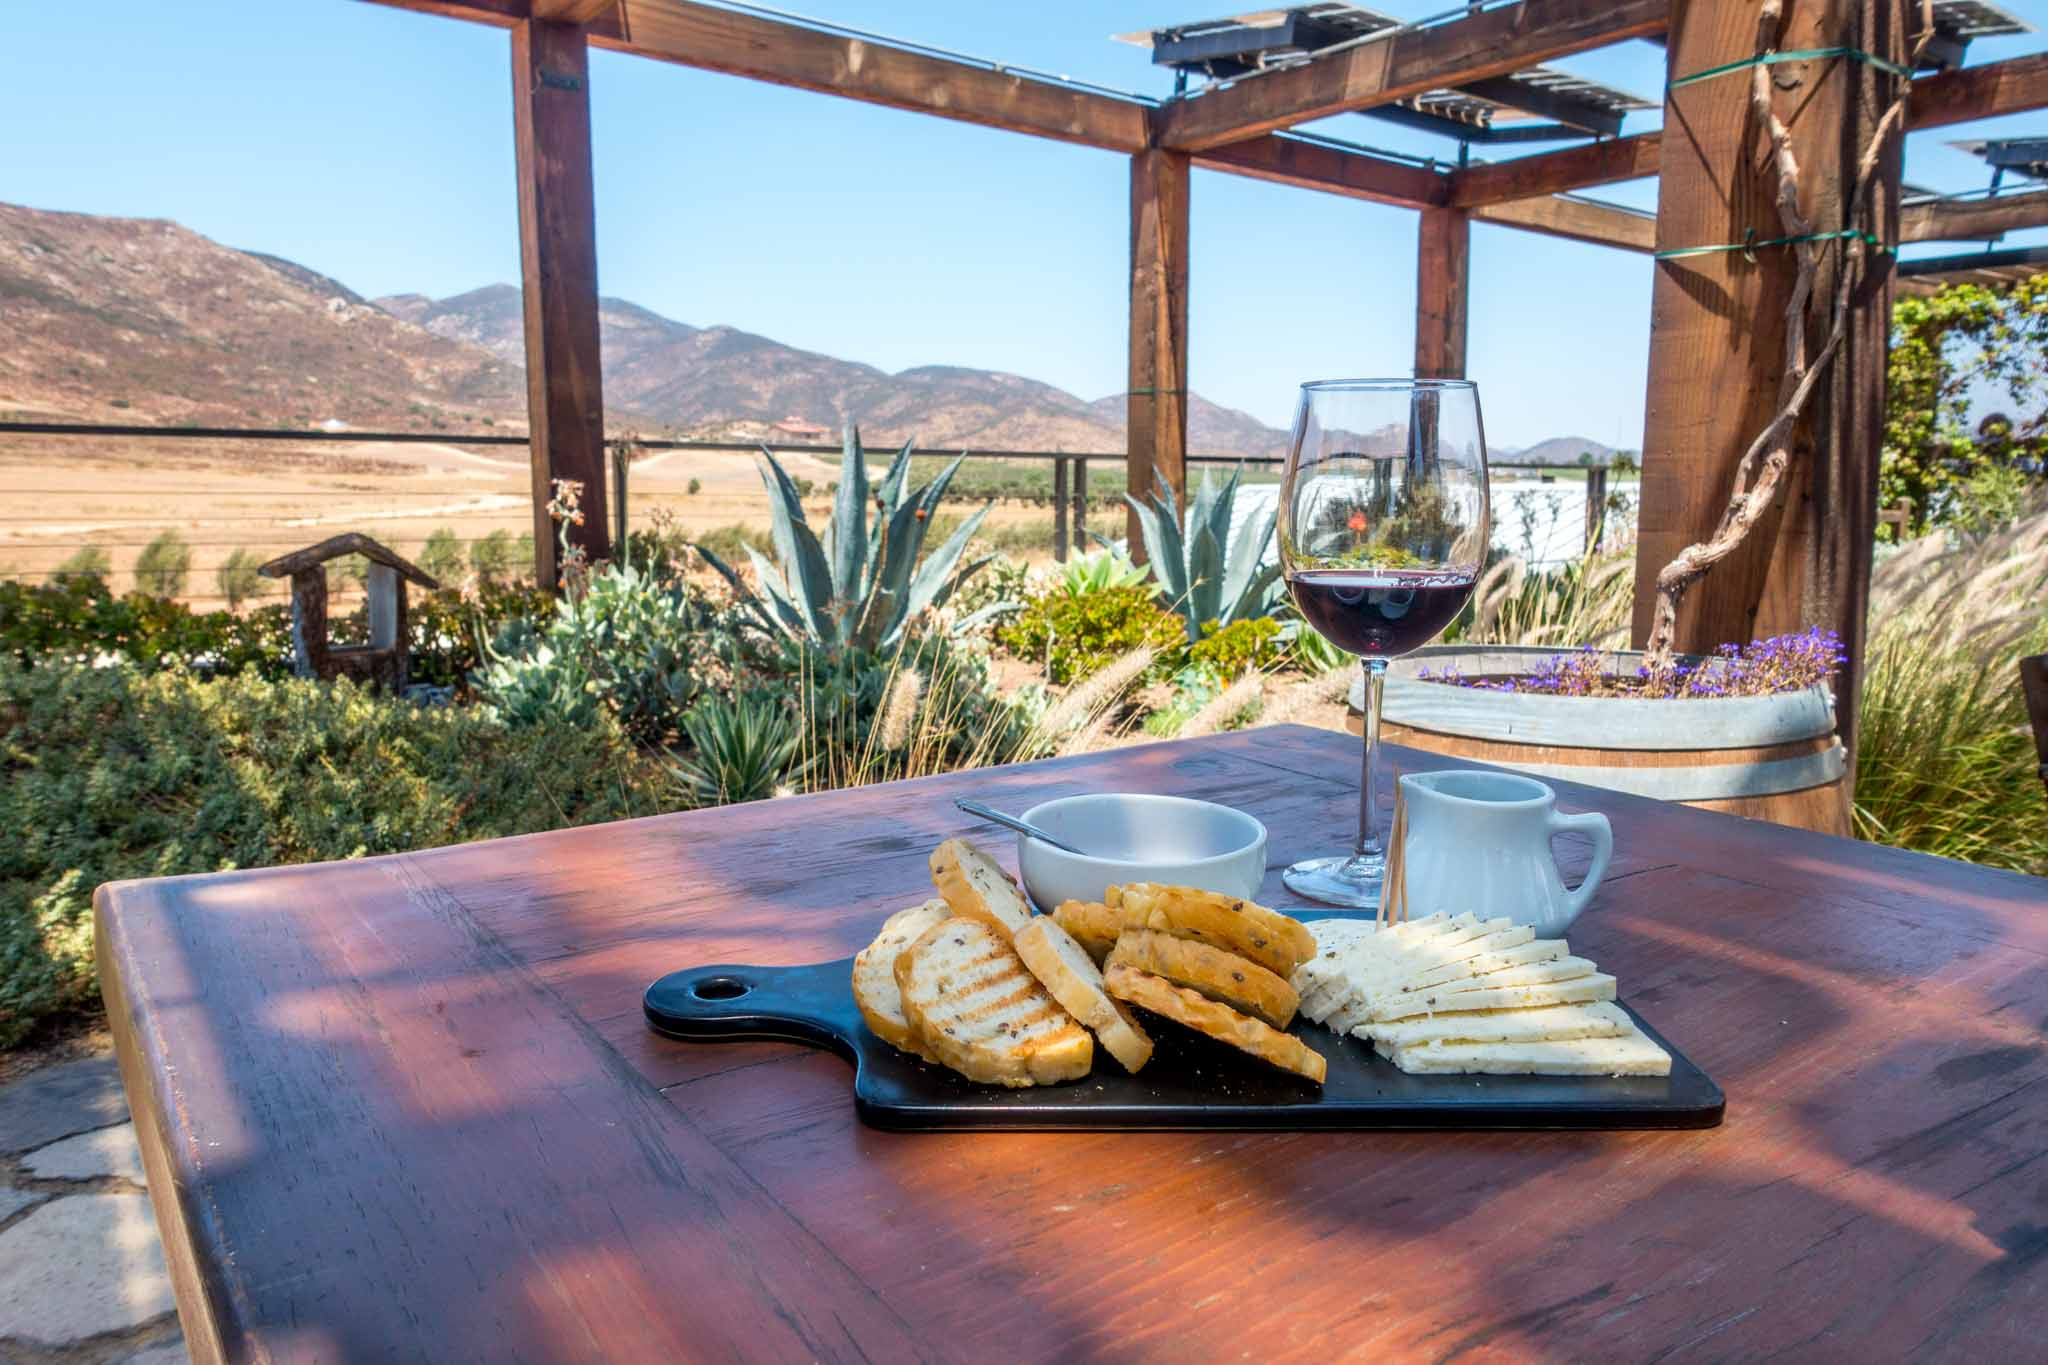 Enjoying the wines in the Valle de Guadalupe Mexico.